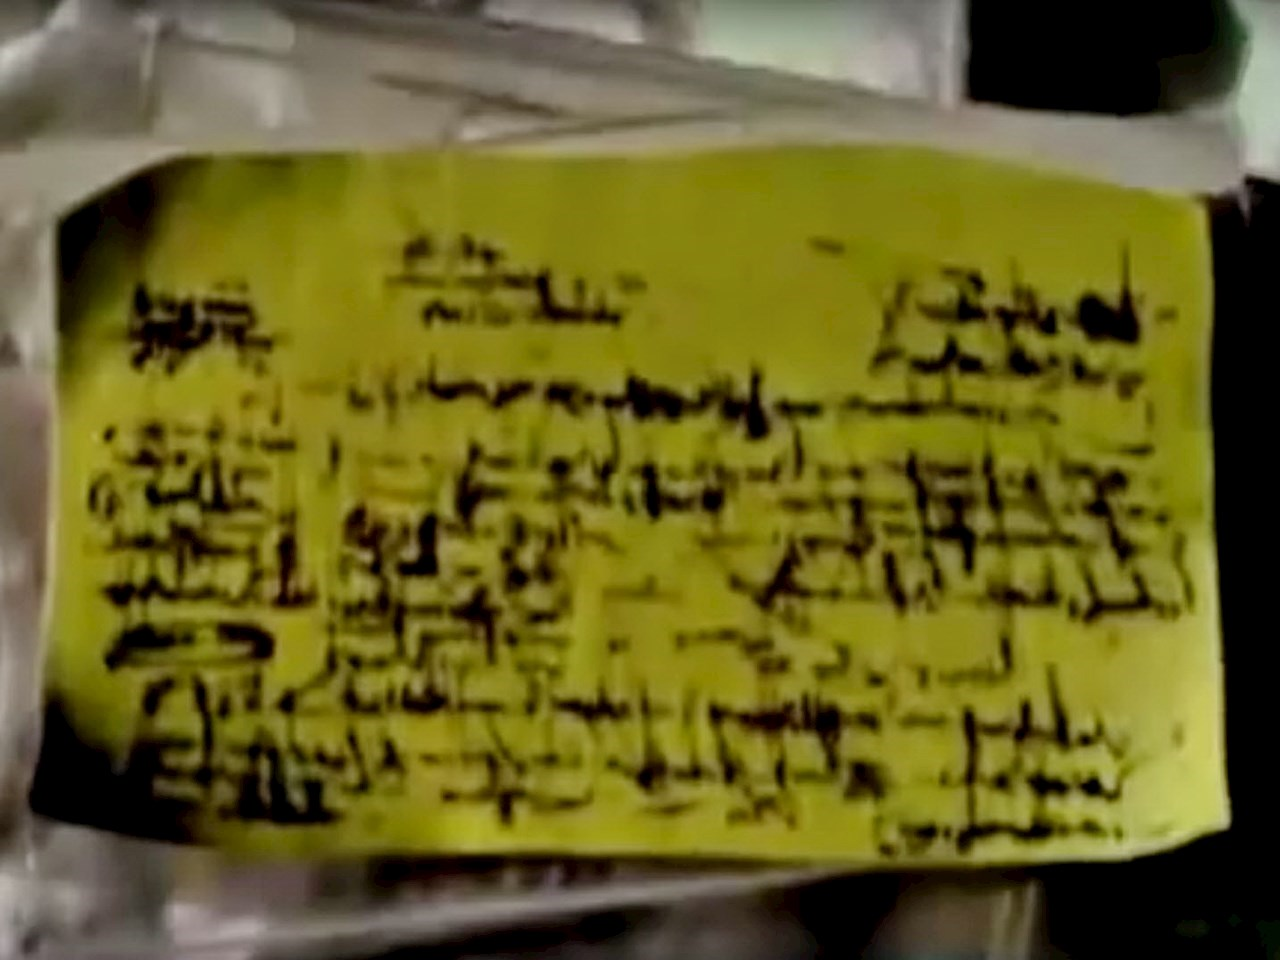 Unknown cursive like scripts found in the mothership